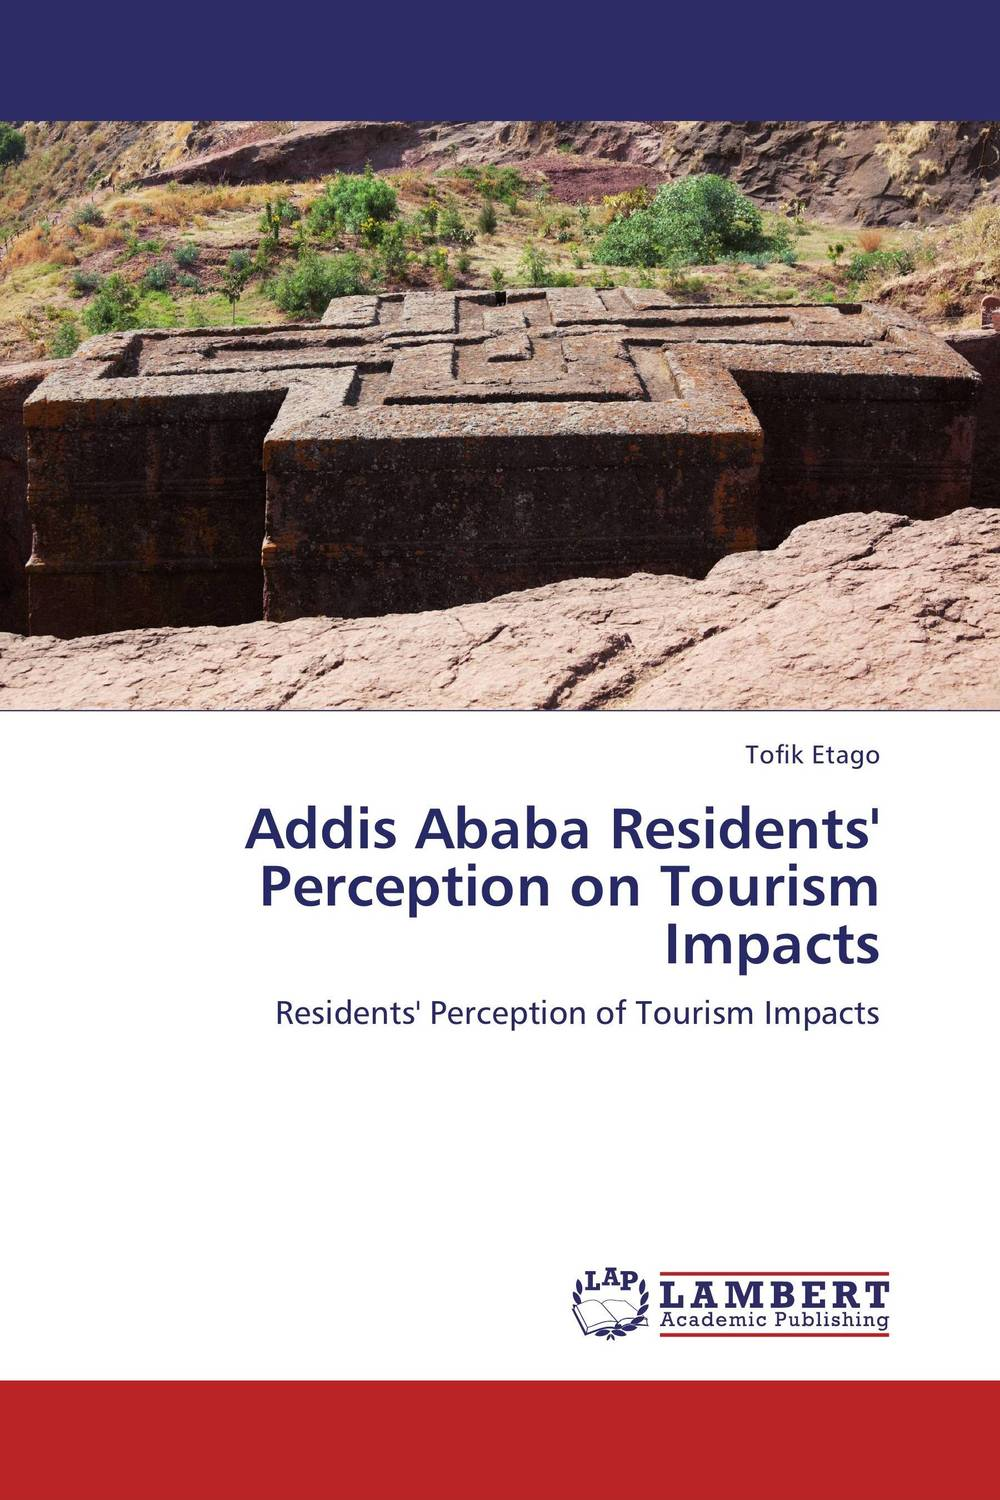 Addis Ababa Residents' Perception on Tourism Impacts